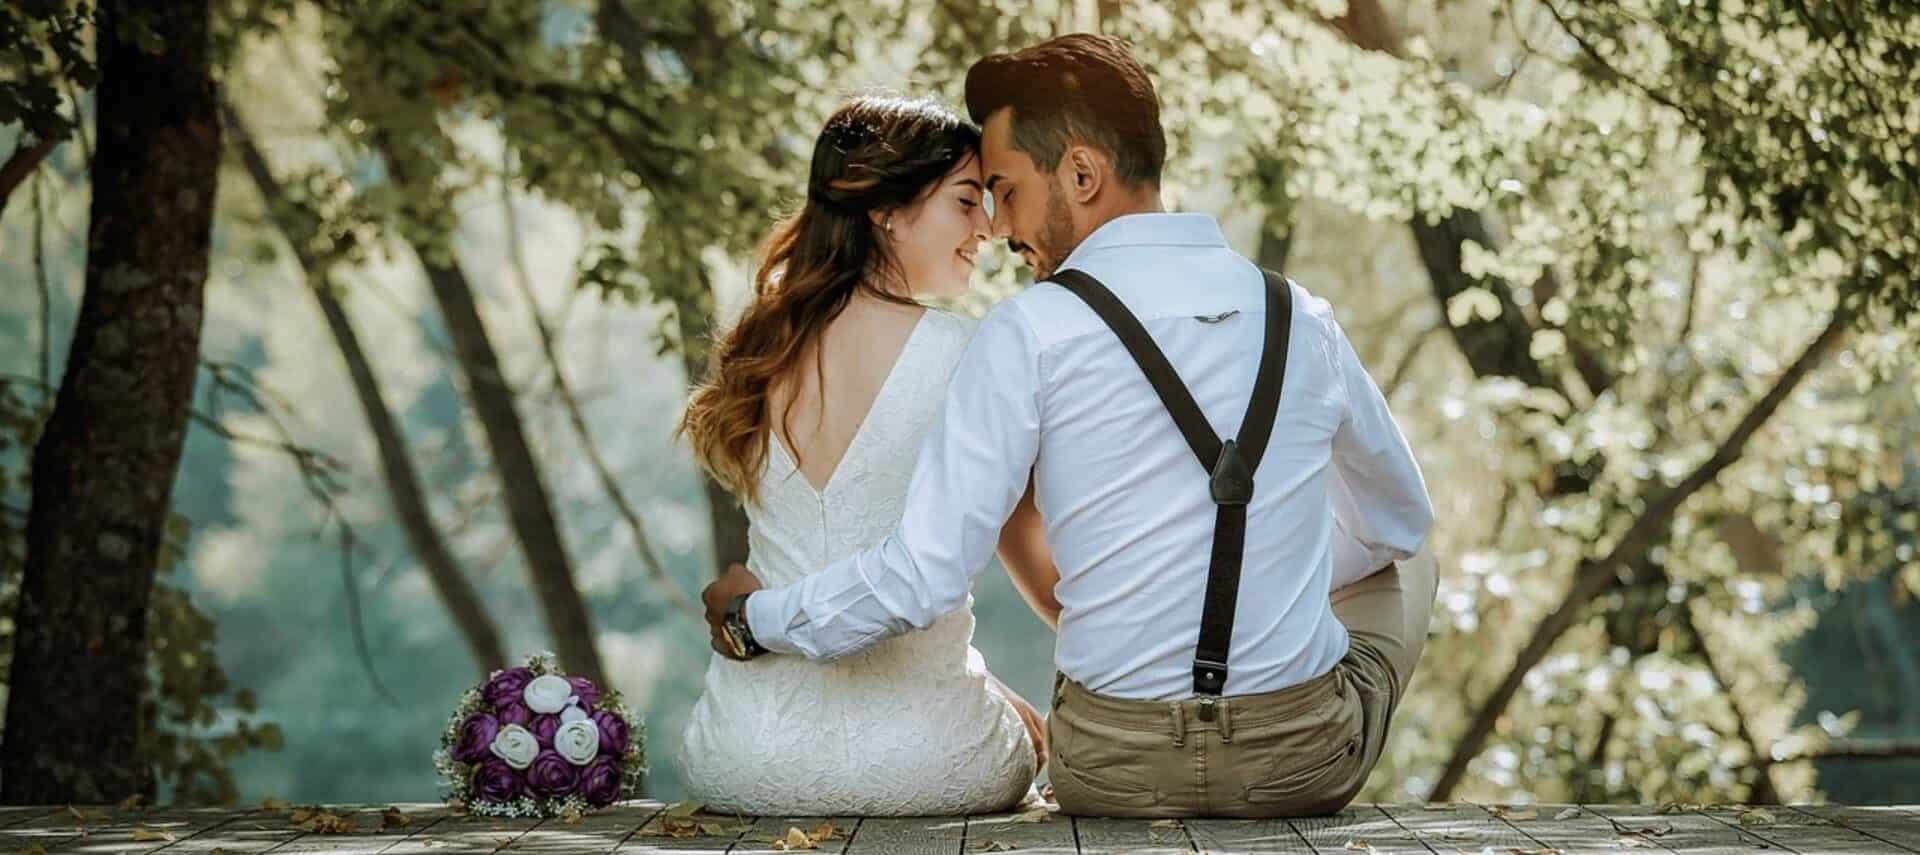 A bride and groom sitting on the edge of a dock facing each other with soft sunlight coming through the trees